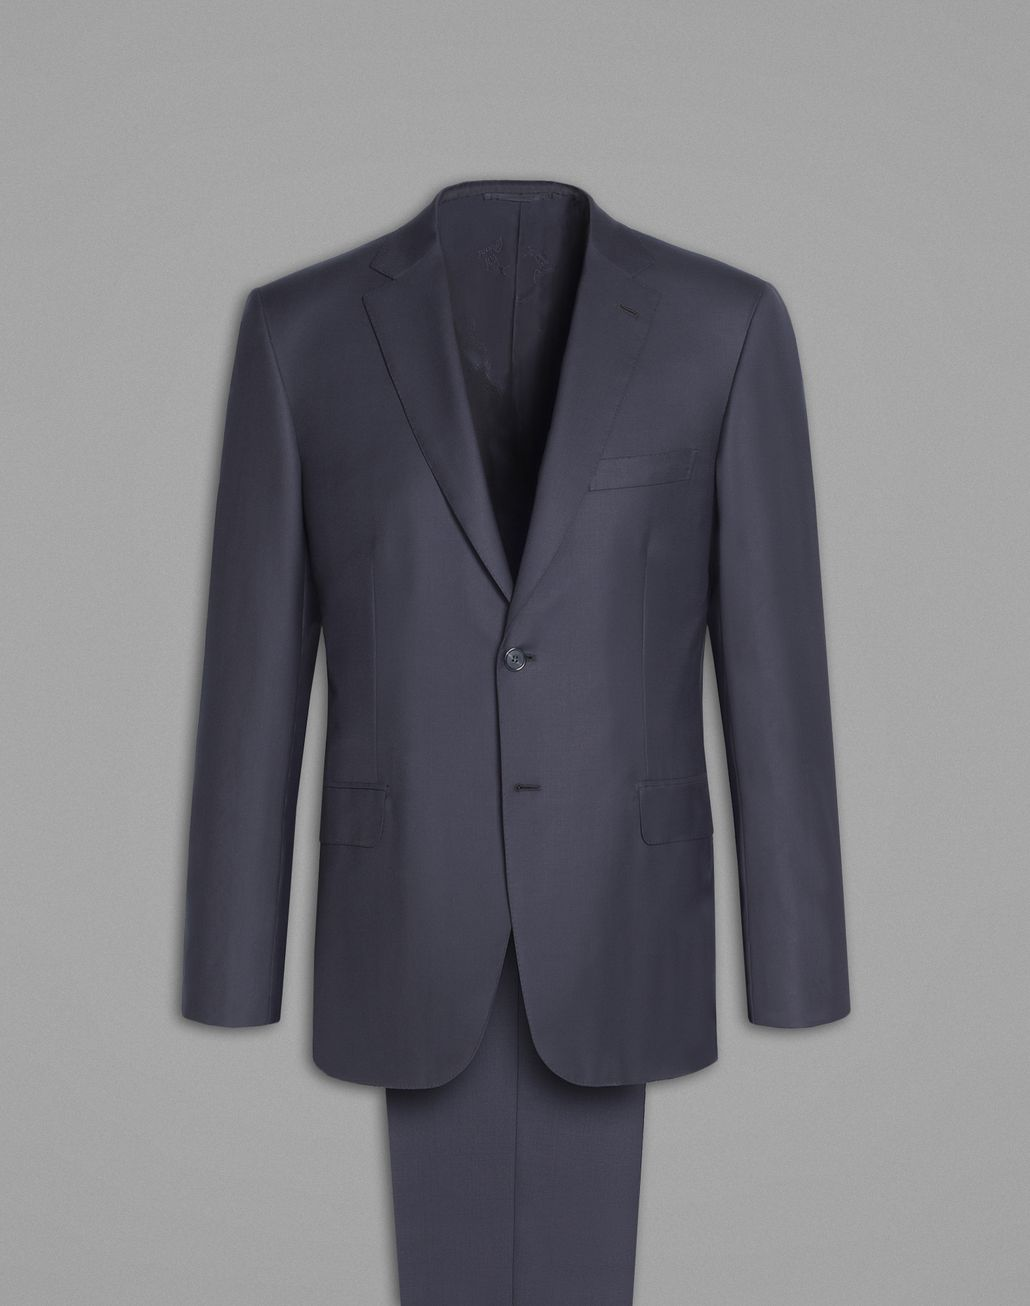 BRIONI Navy Blue Brunico Suit Suits & Jackets Man f